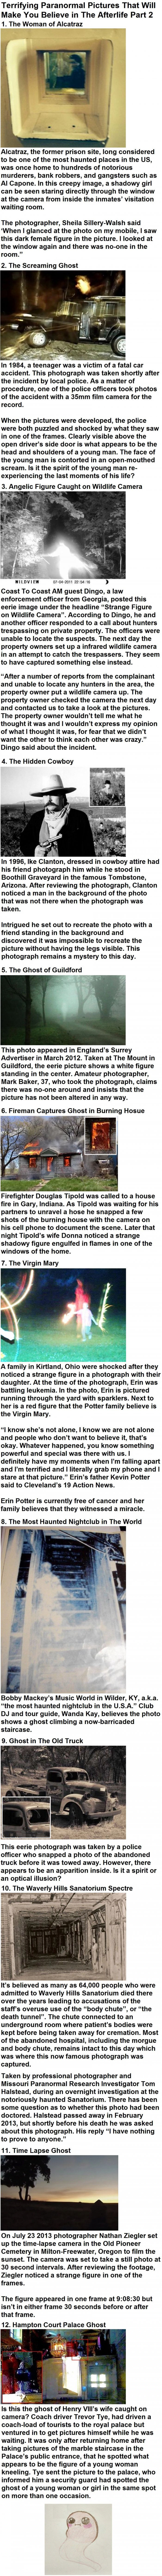 Terrifying Paranormal Pictures That Will Make You Believe in The Afterlife Part 2